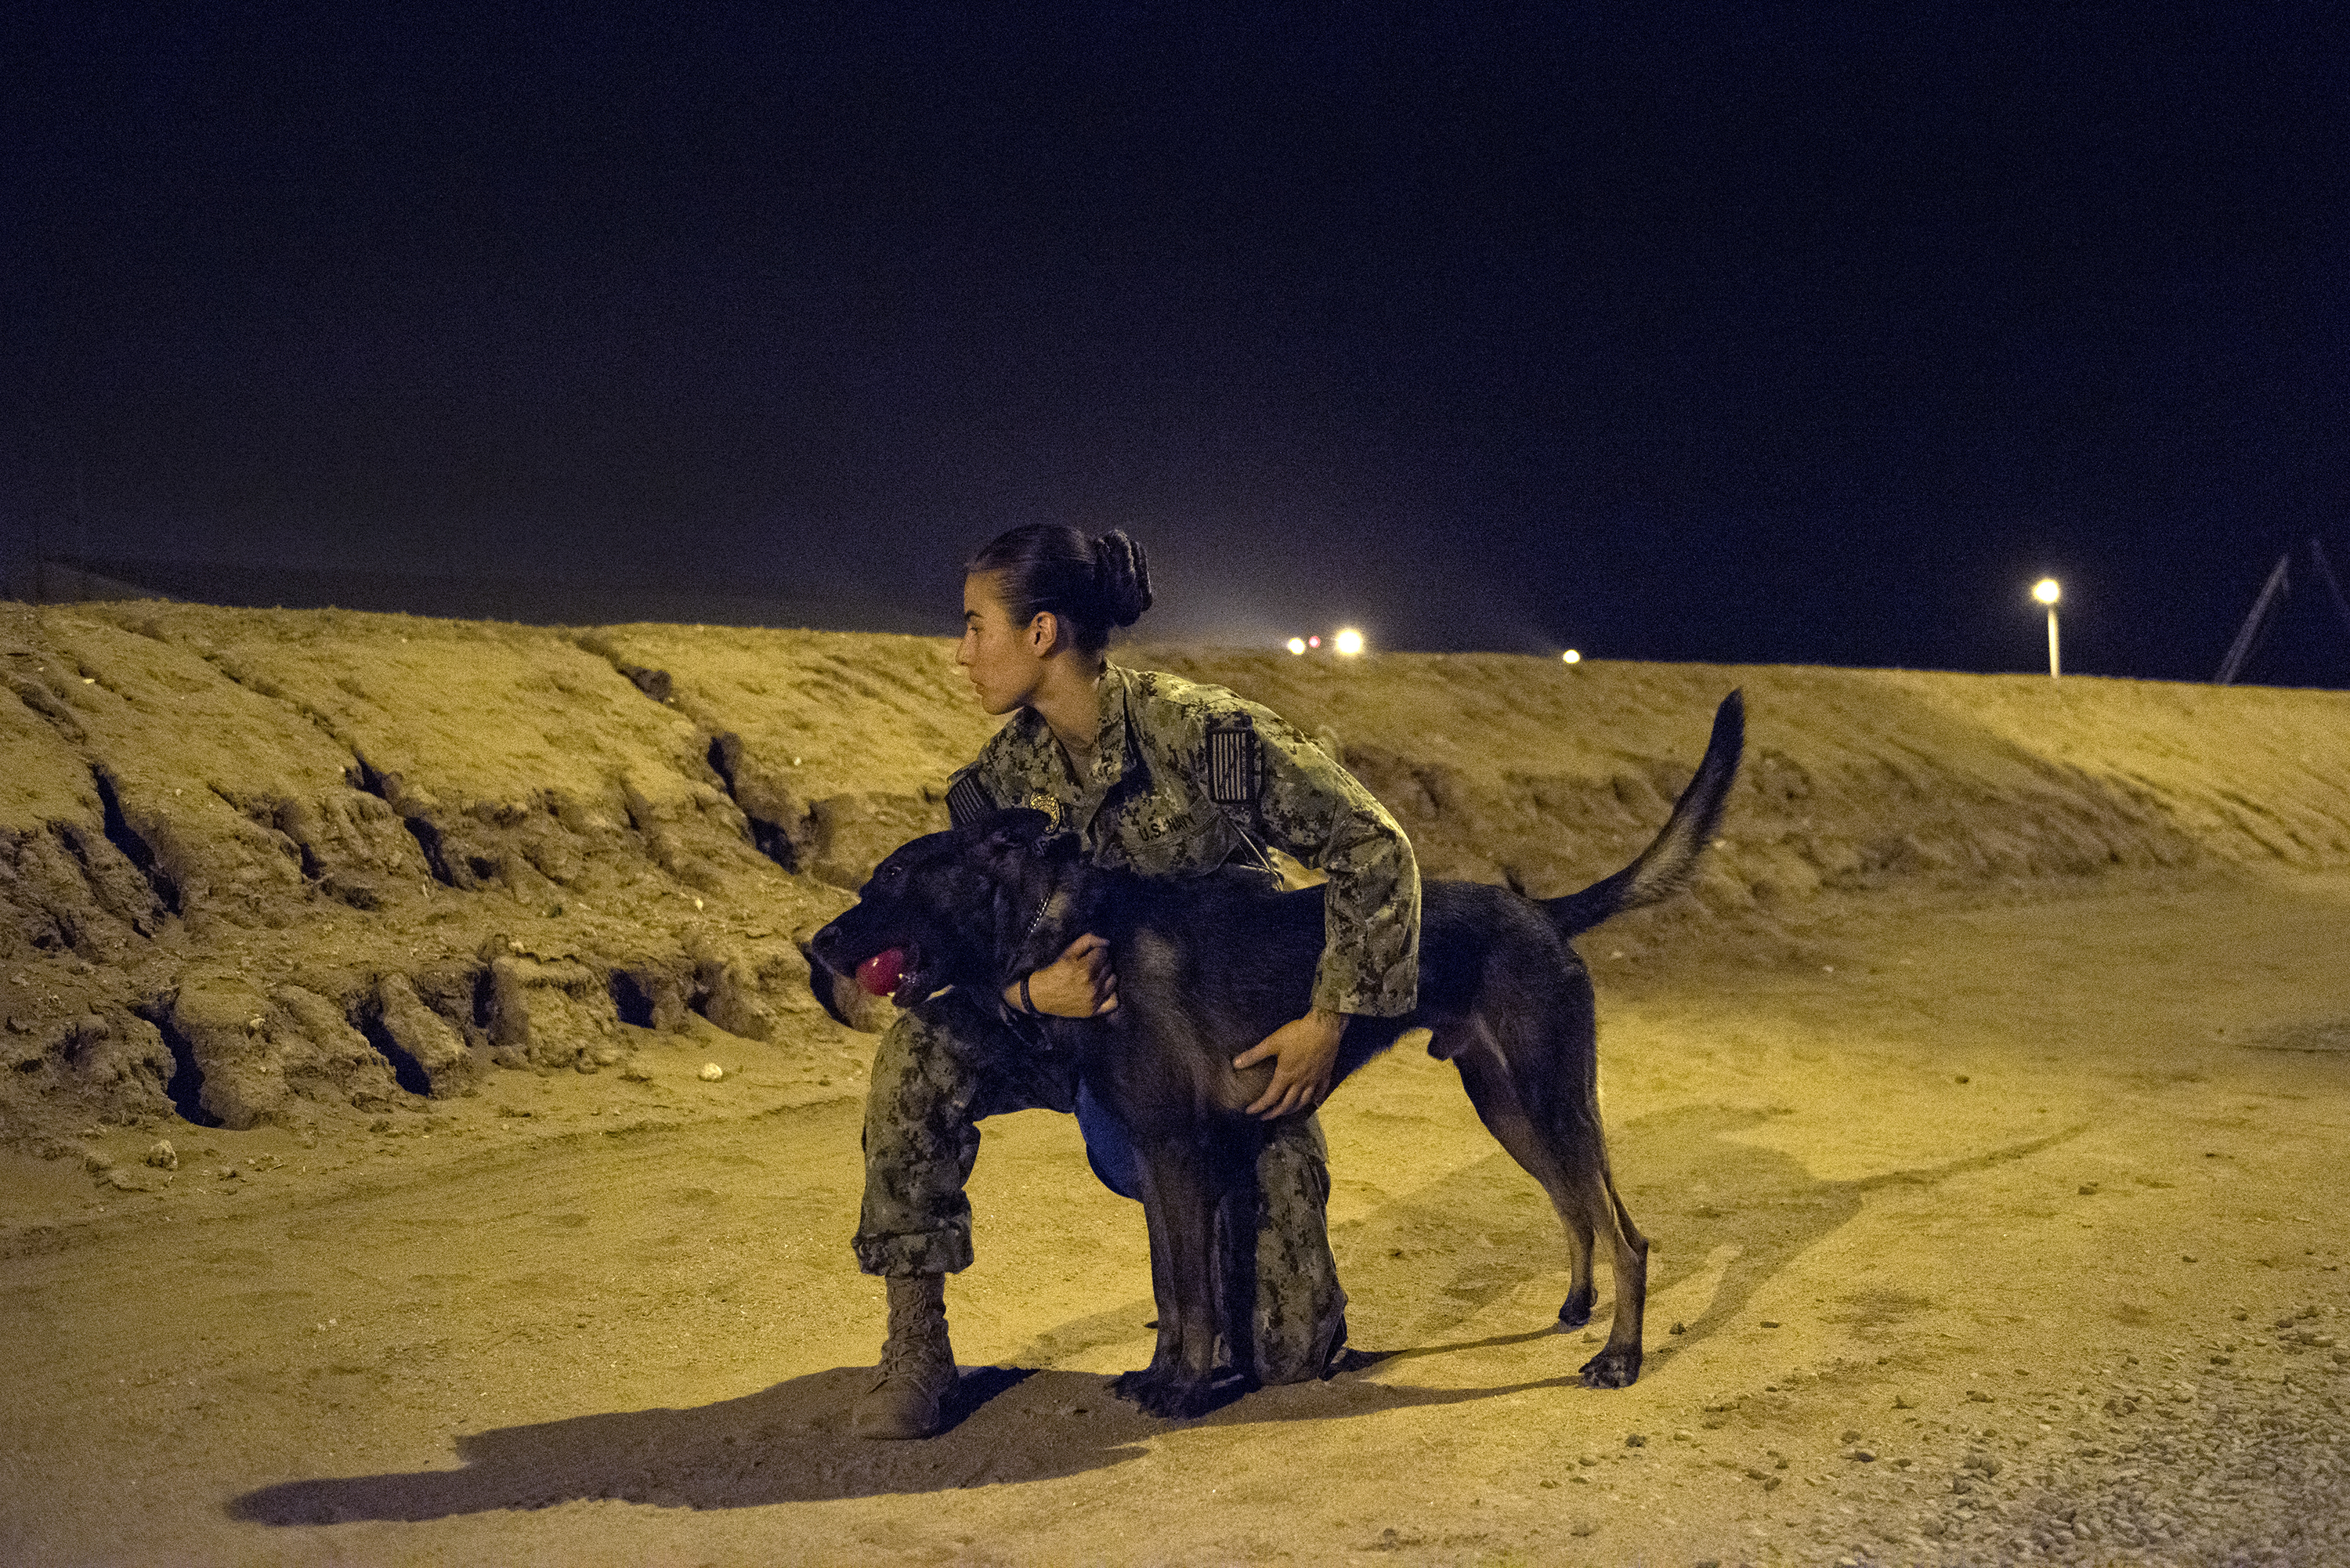 U.S. Navy Master-at-Arms 1st Class Kristina Vargas, a military working dog (MWD) handler rewards MWD Pponder after conducting proficiency training on Camp Lemonnier, Djibouti, July 31, 2018. Military Working Dogs can be used to perform searches, subdue suspects, and detect explosives and narcotics. (U.S. Air National Guard photo by Master Sgt. Sarah Mattison)